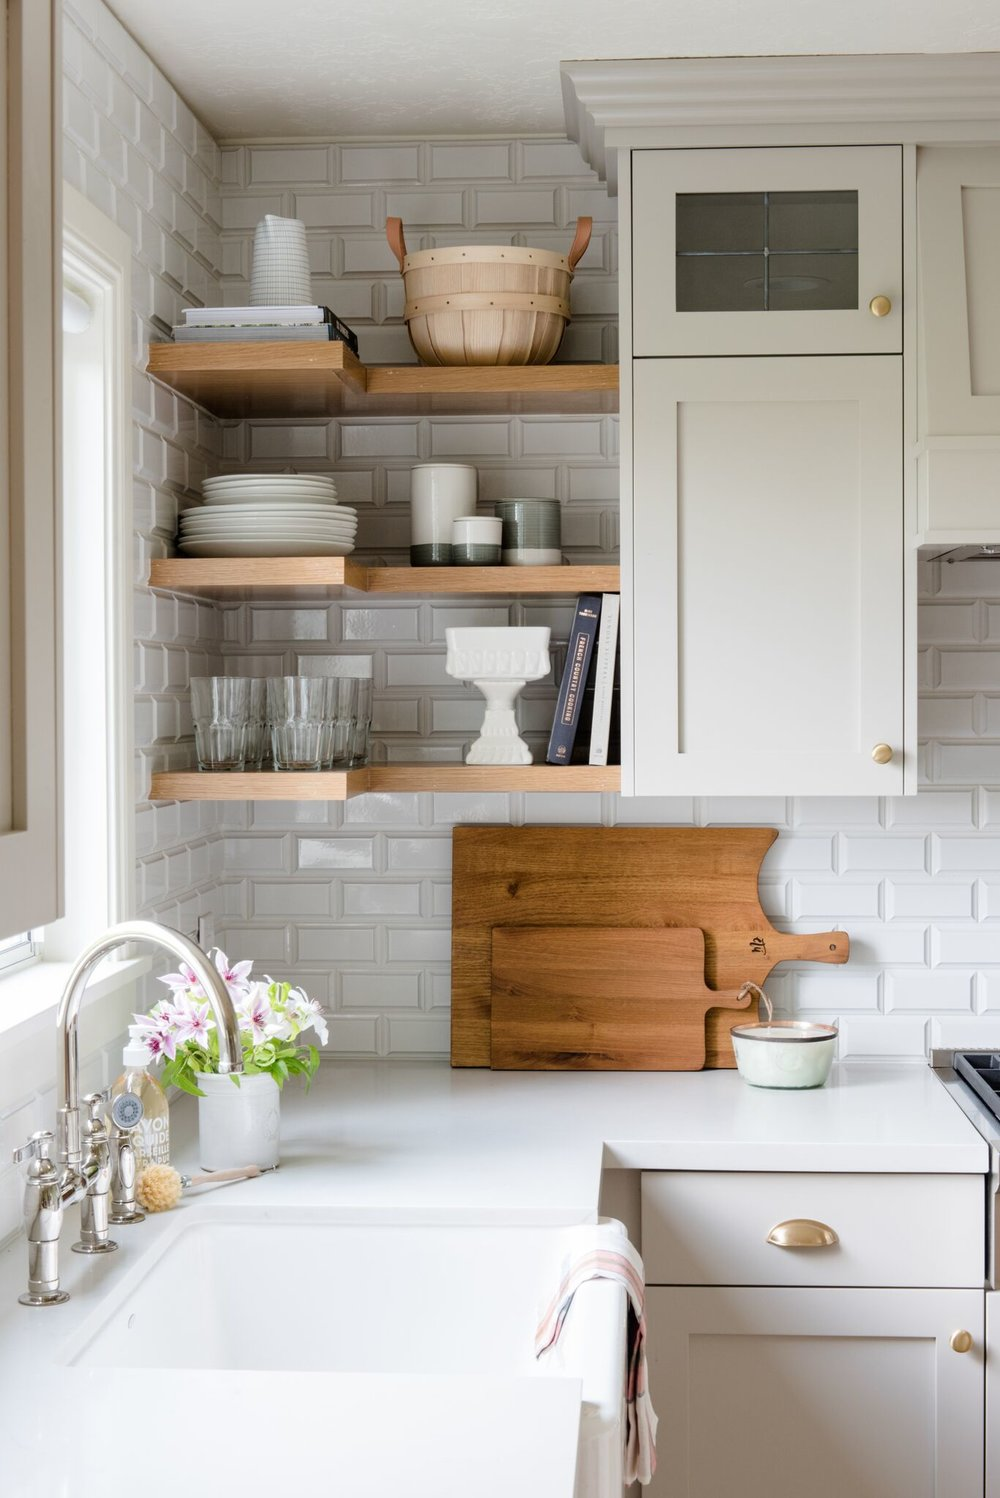 Open shelving in this pretty kitchen by Studio McGee